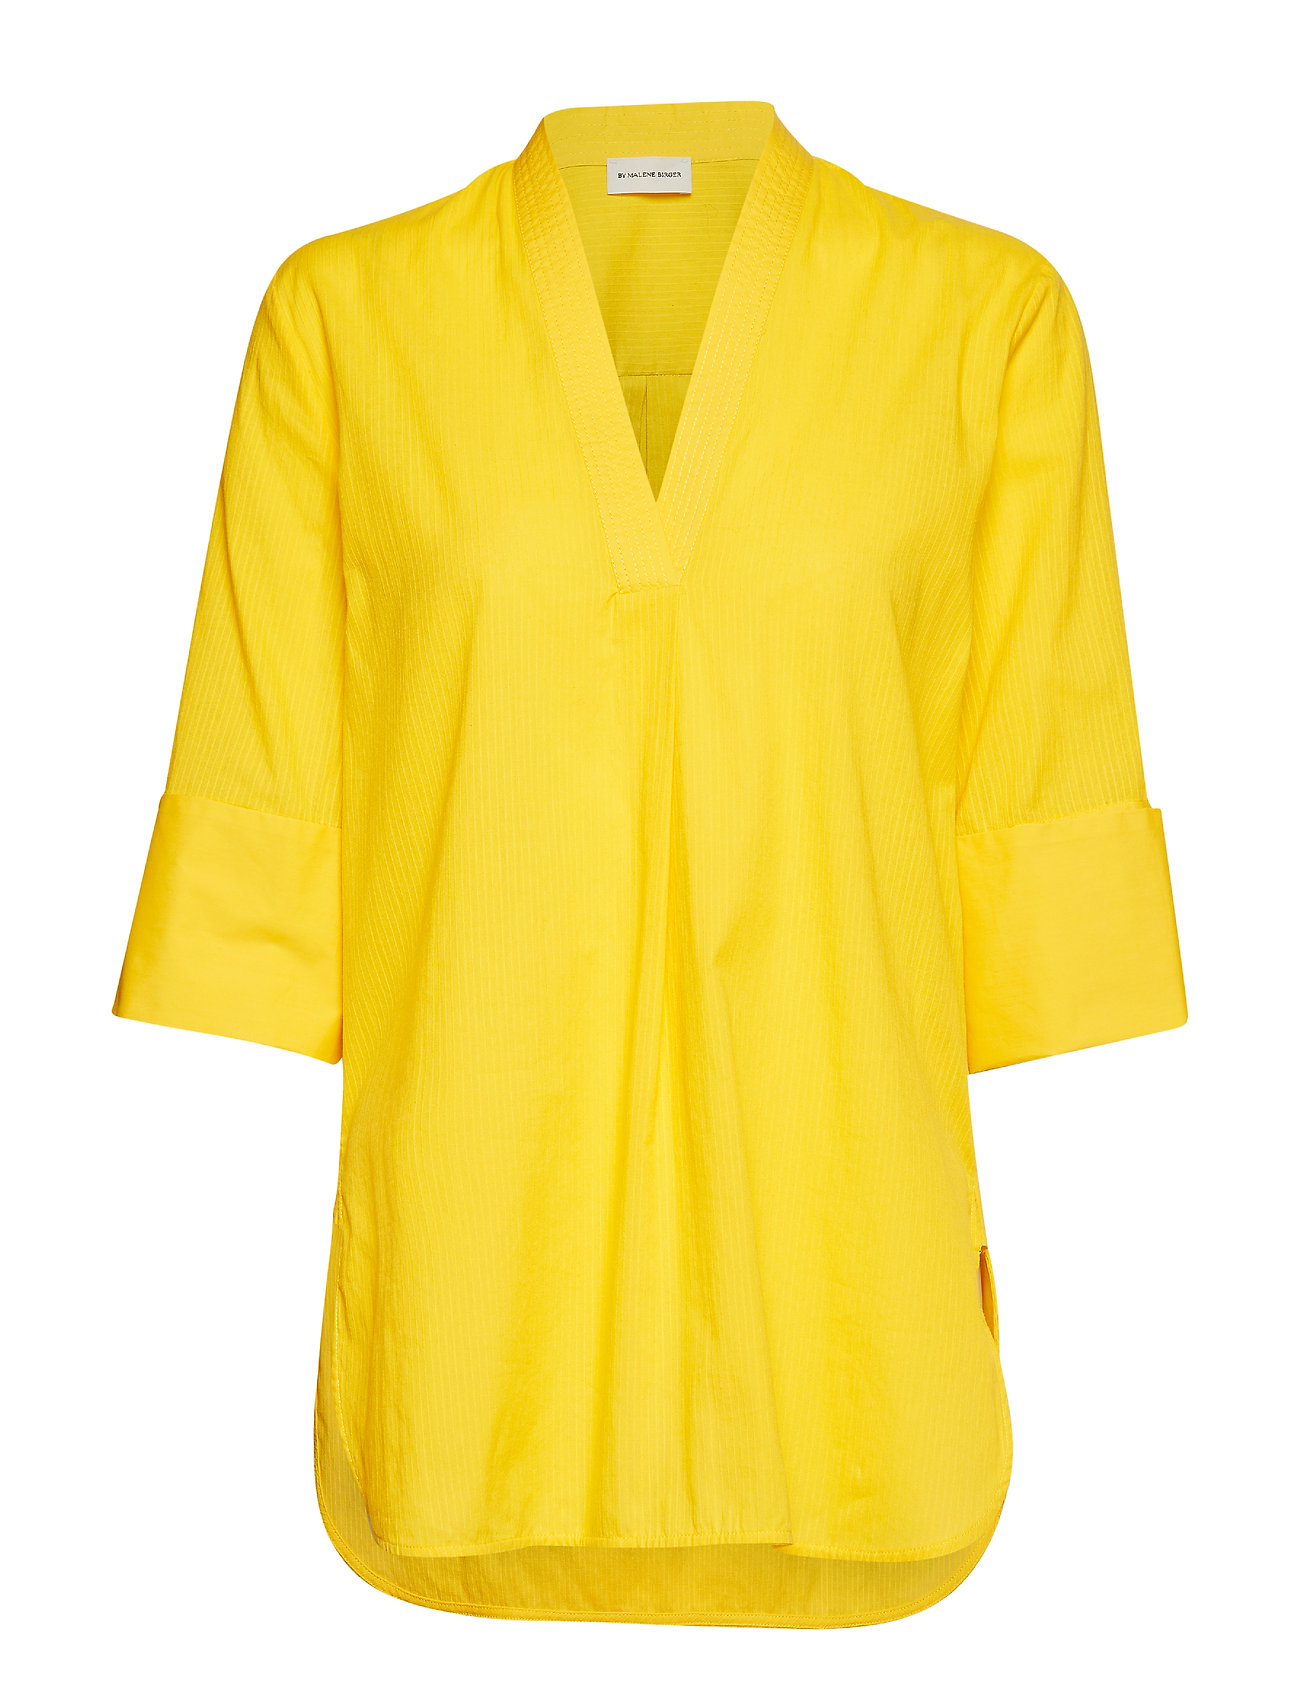 Yellow TOP MED PRINT  By Malene Birger  Bluser